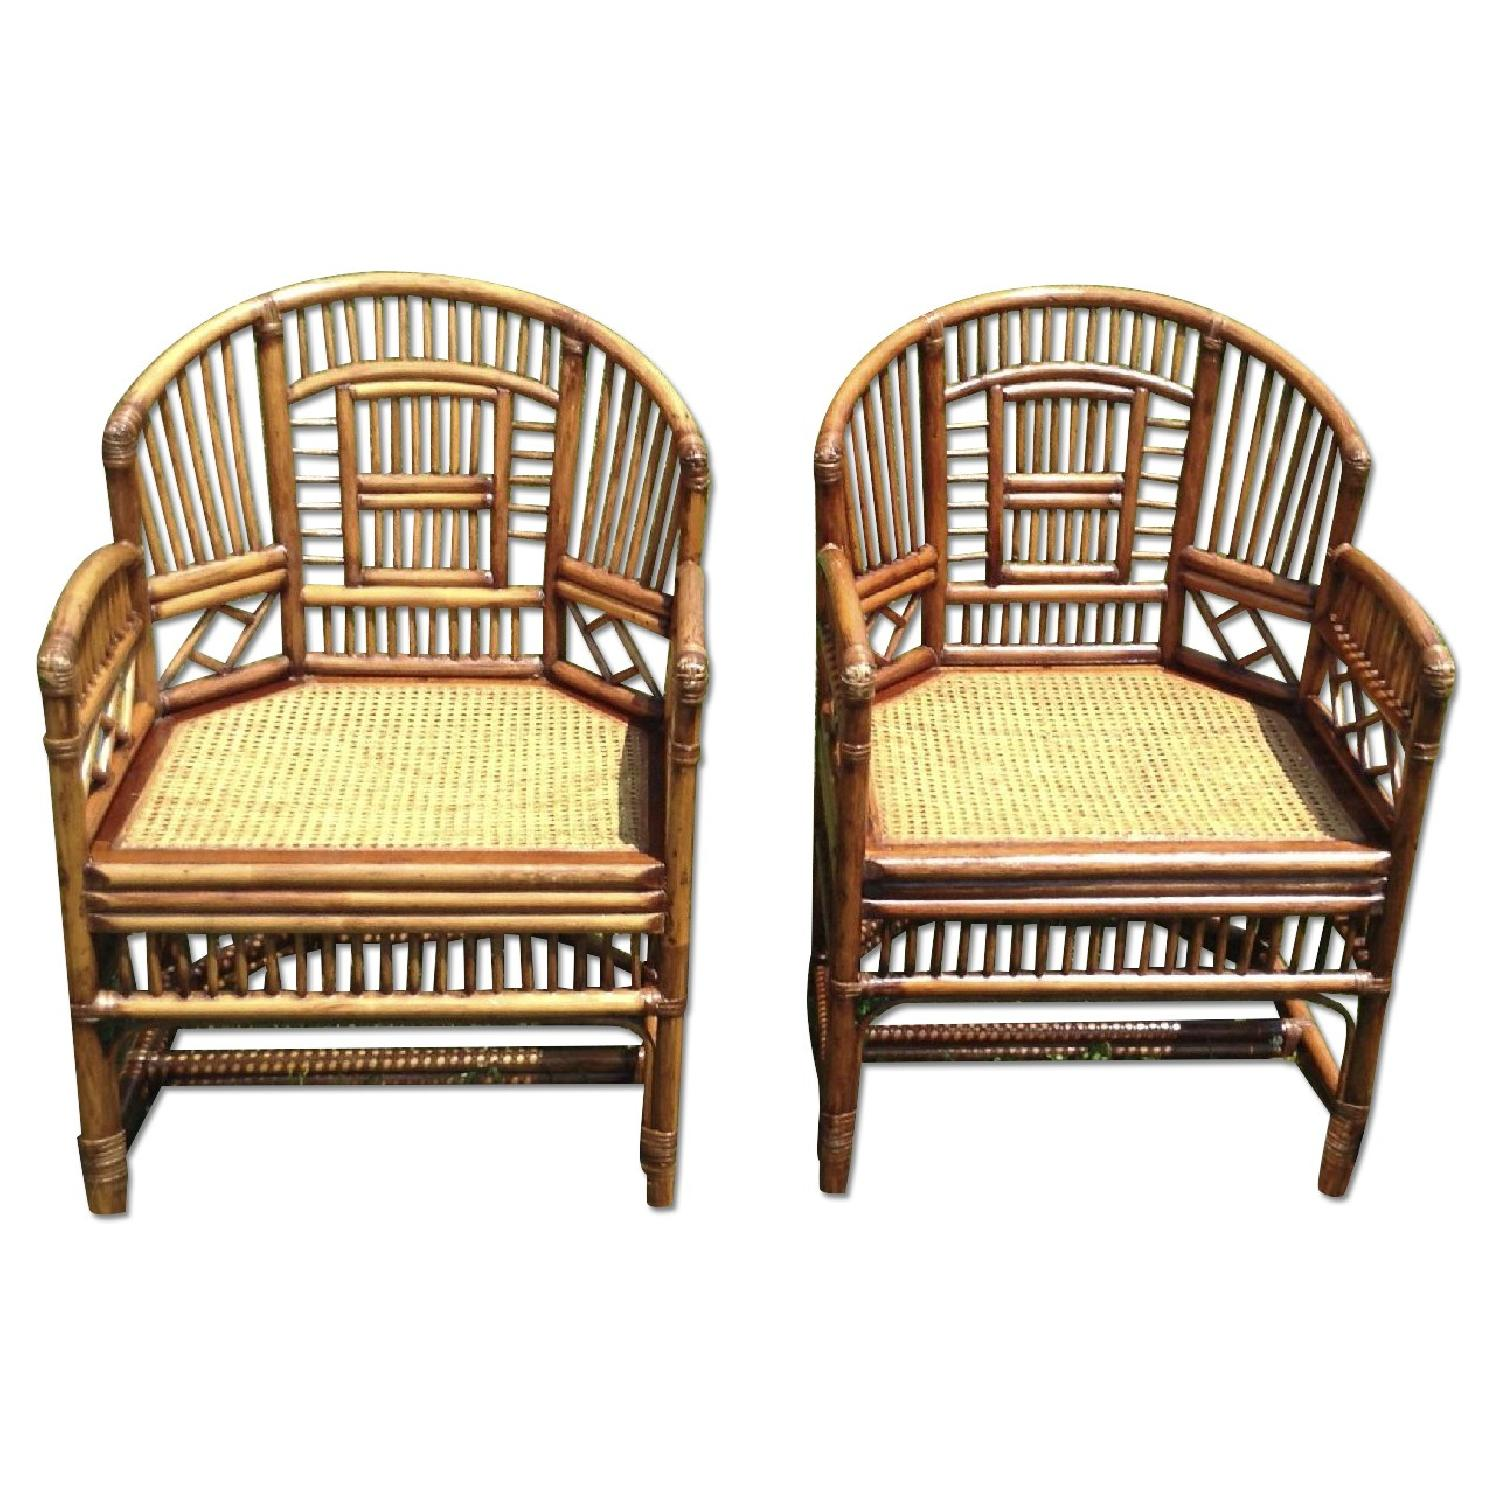 Captivating Vintage Brighton Style Bamboo Arm Chairs ...